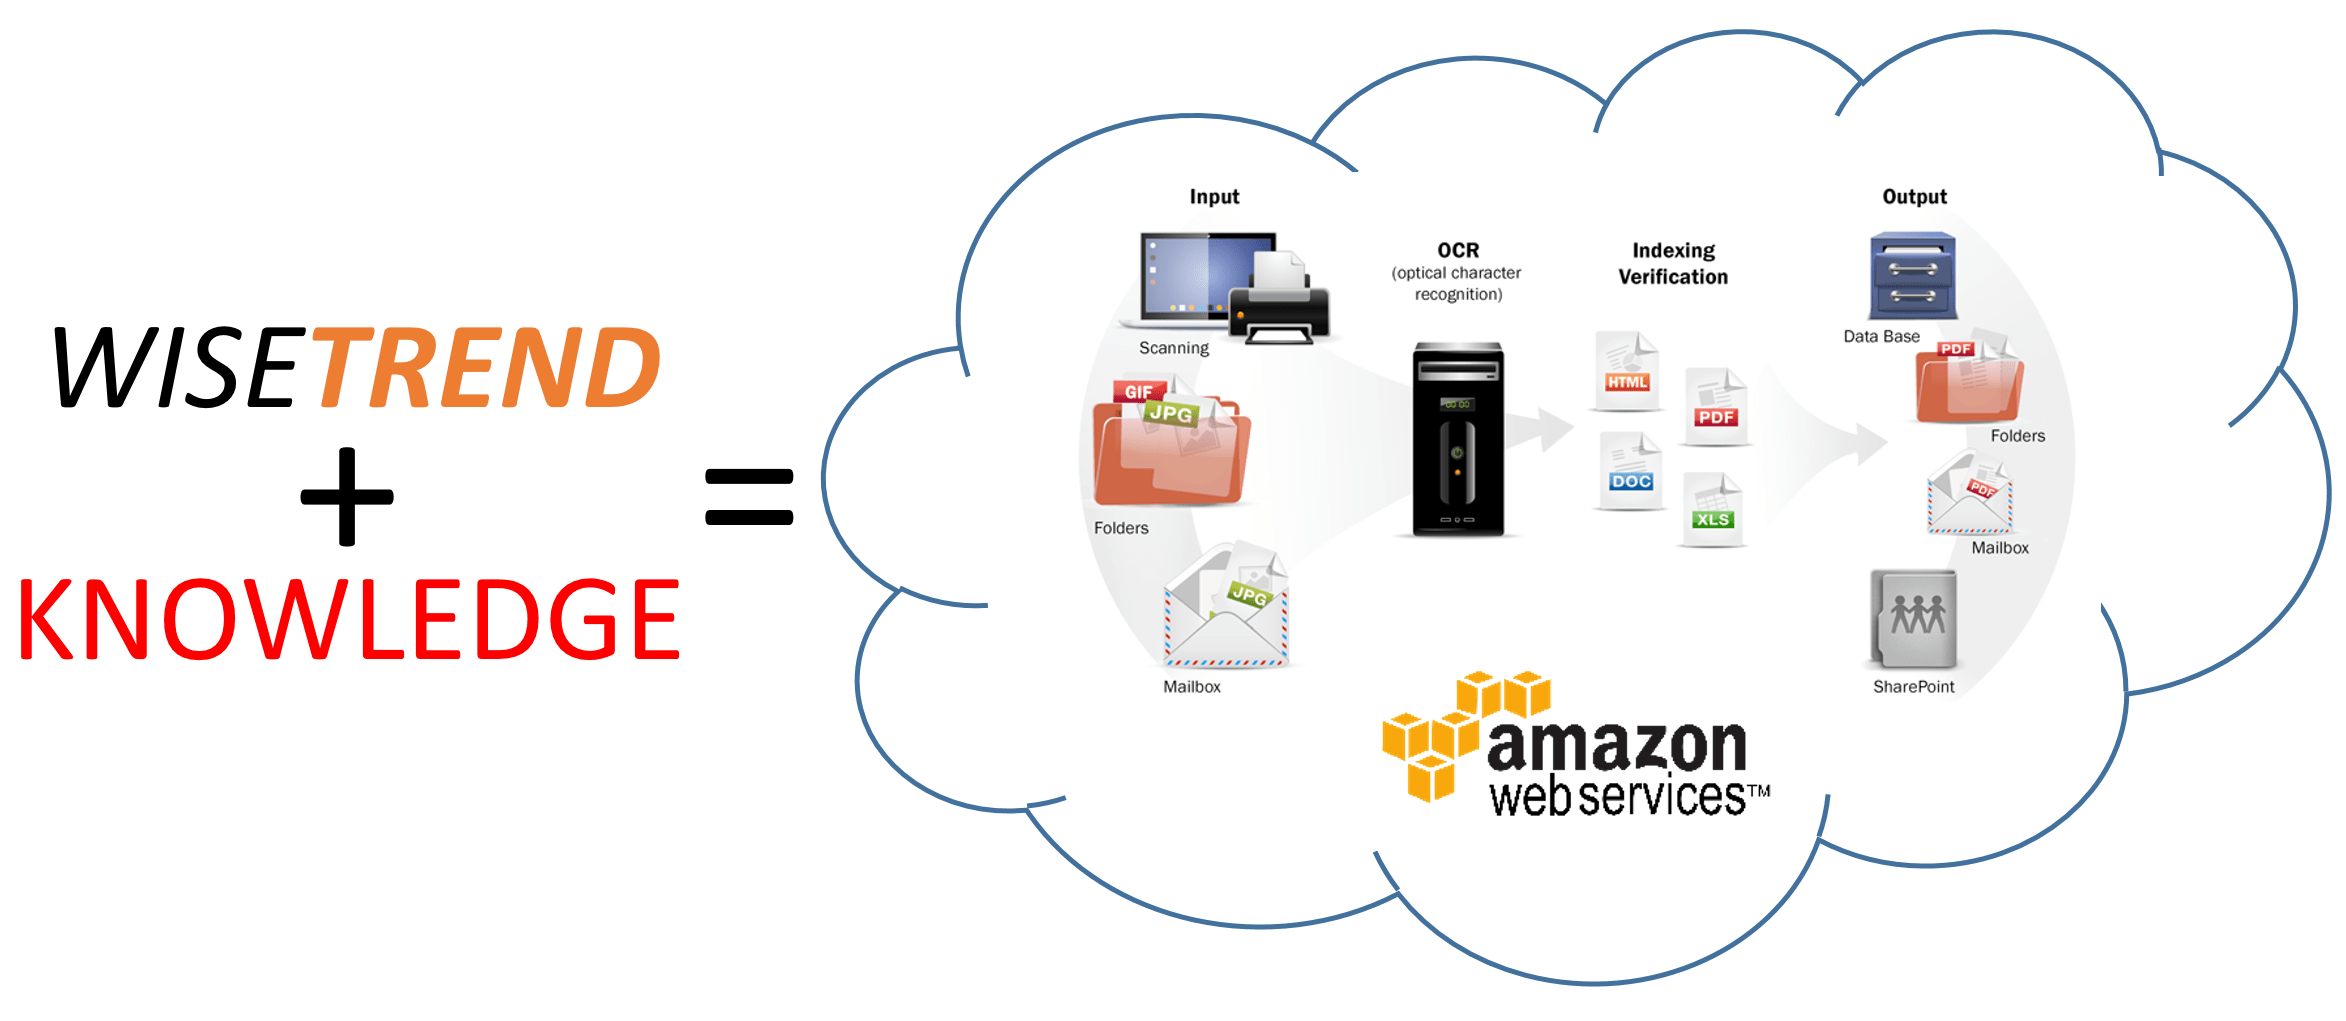 abbyy amazon ocr cloud testing analysis recognition server document conversion